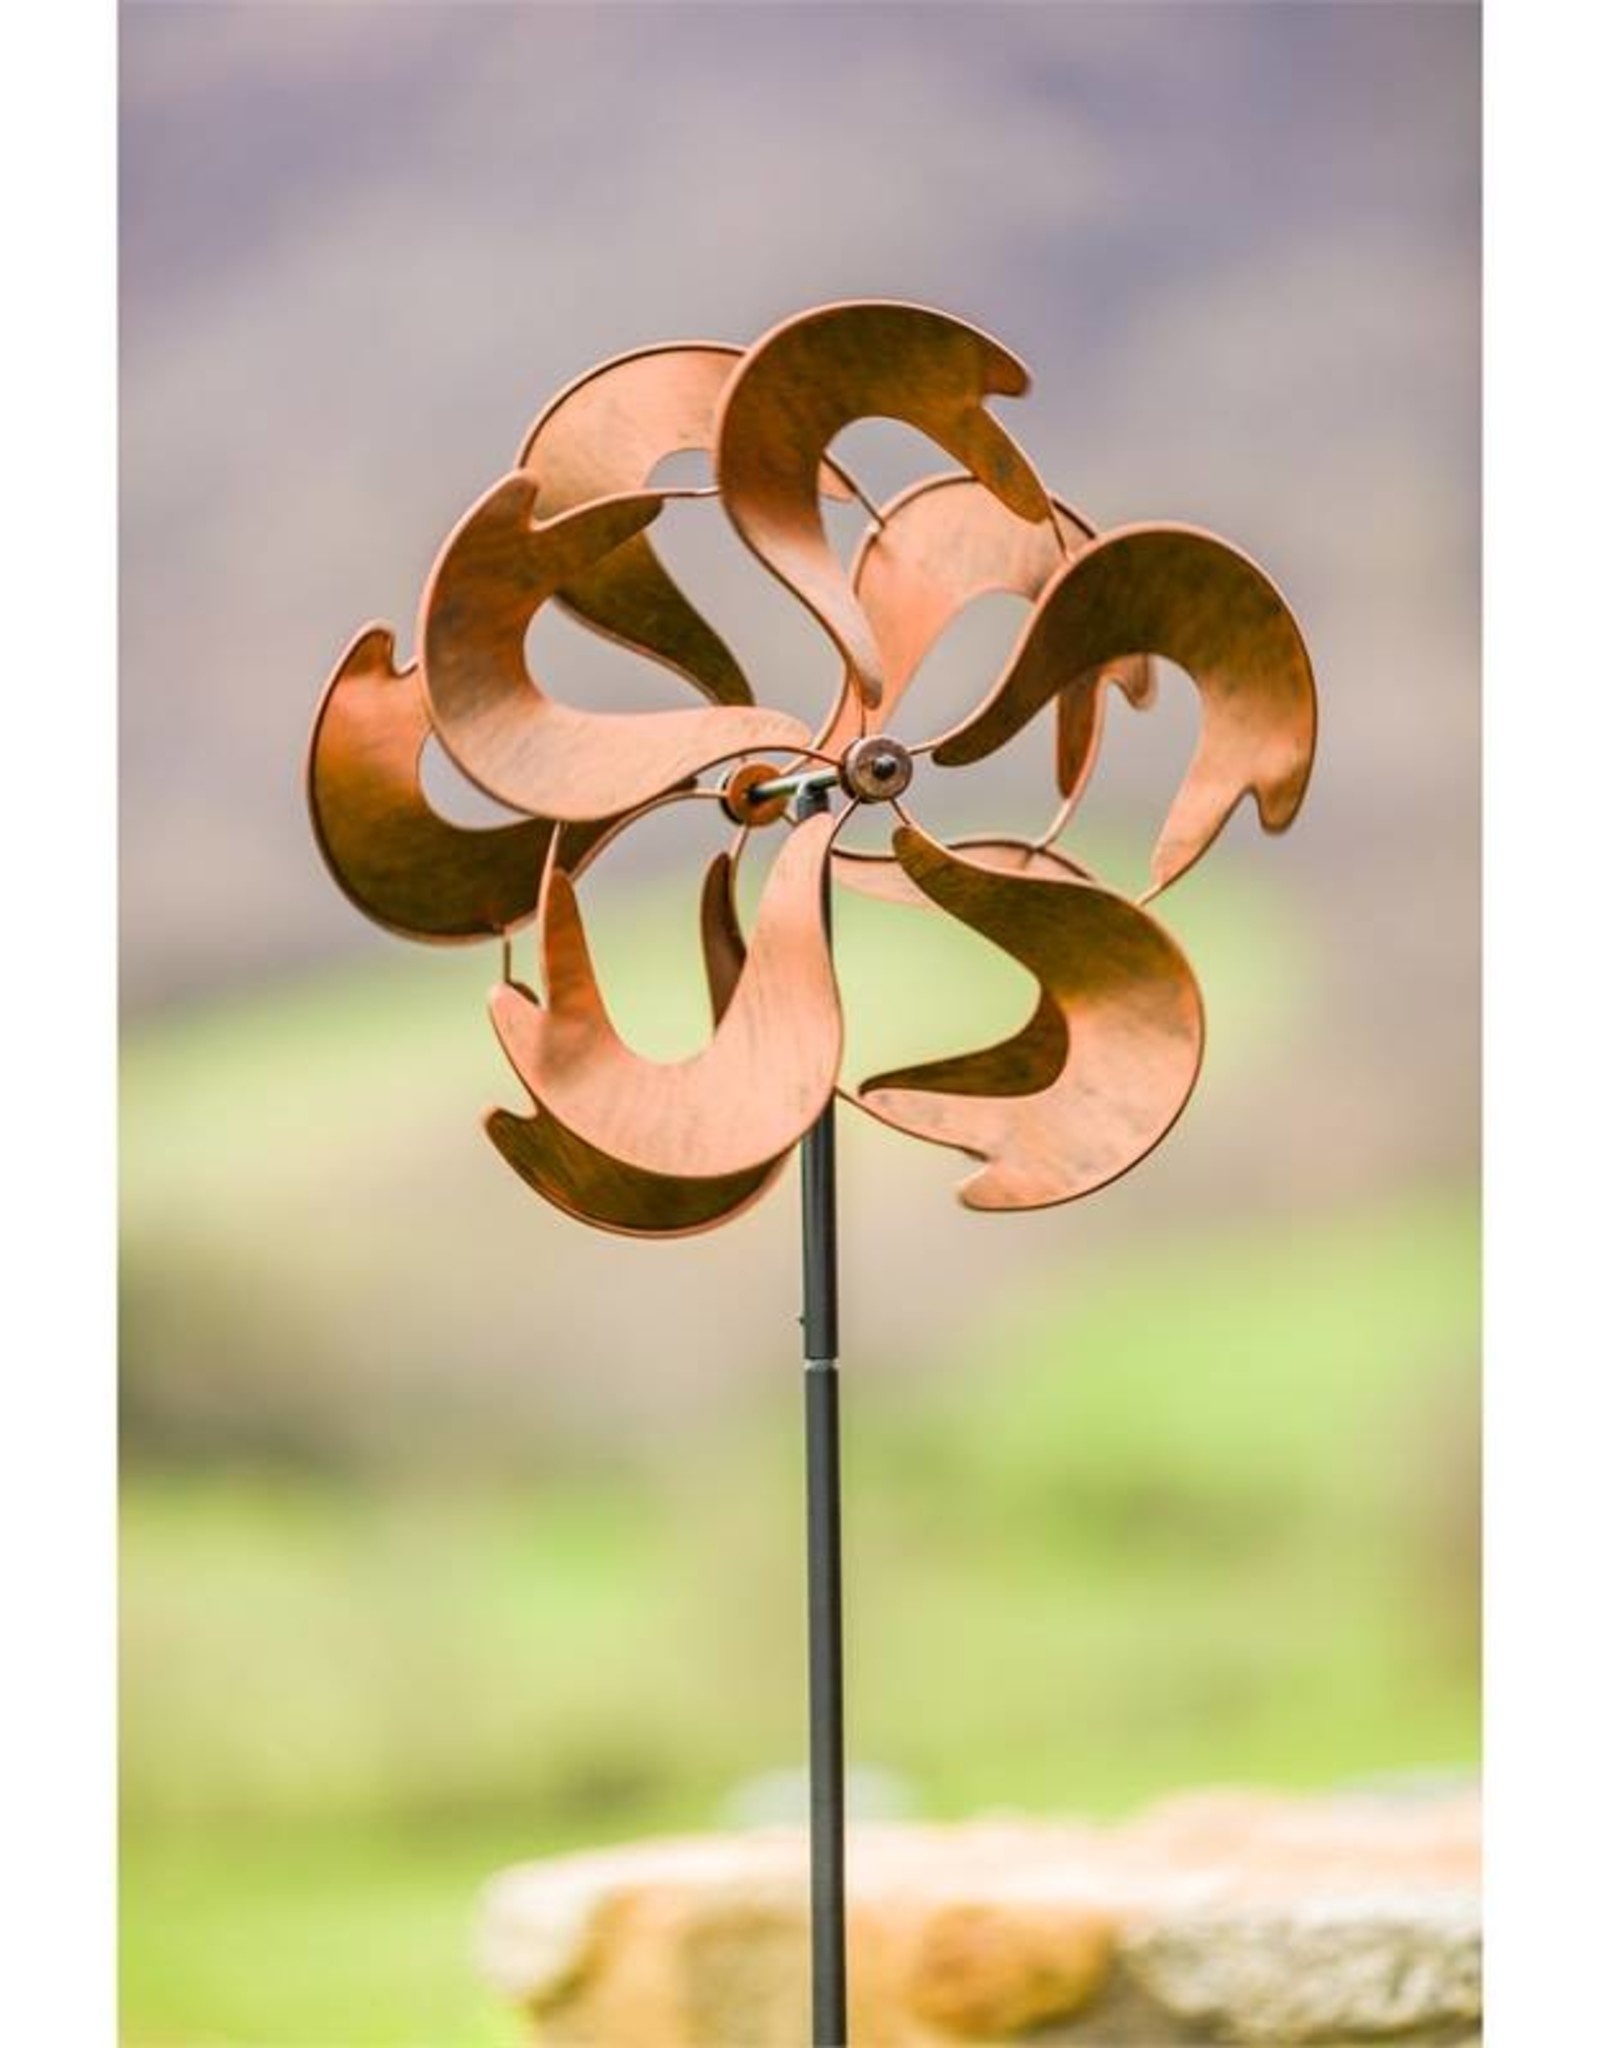 Contained Energy, Wind Spinner